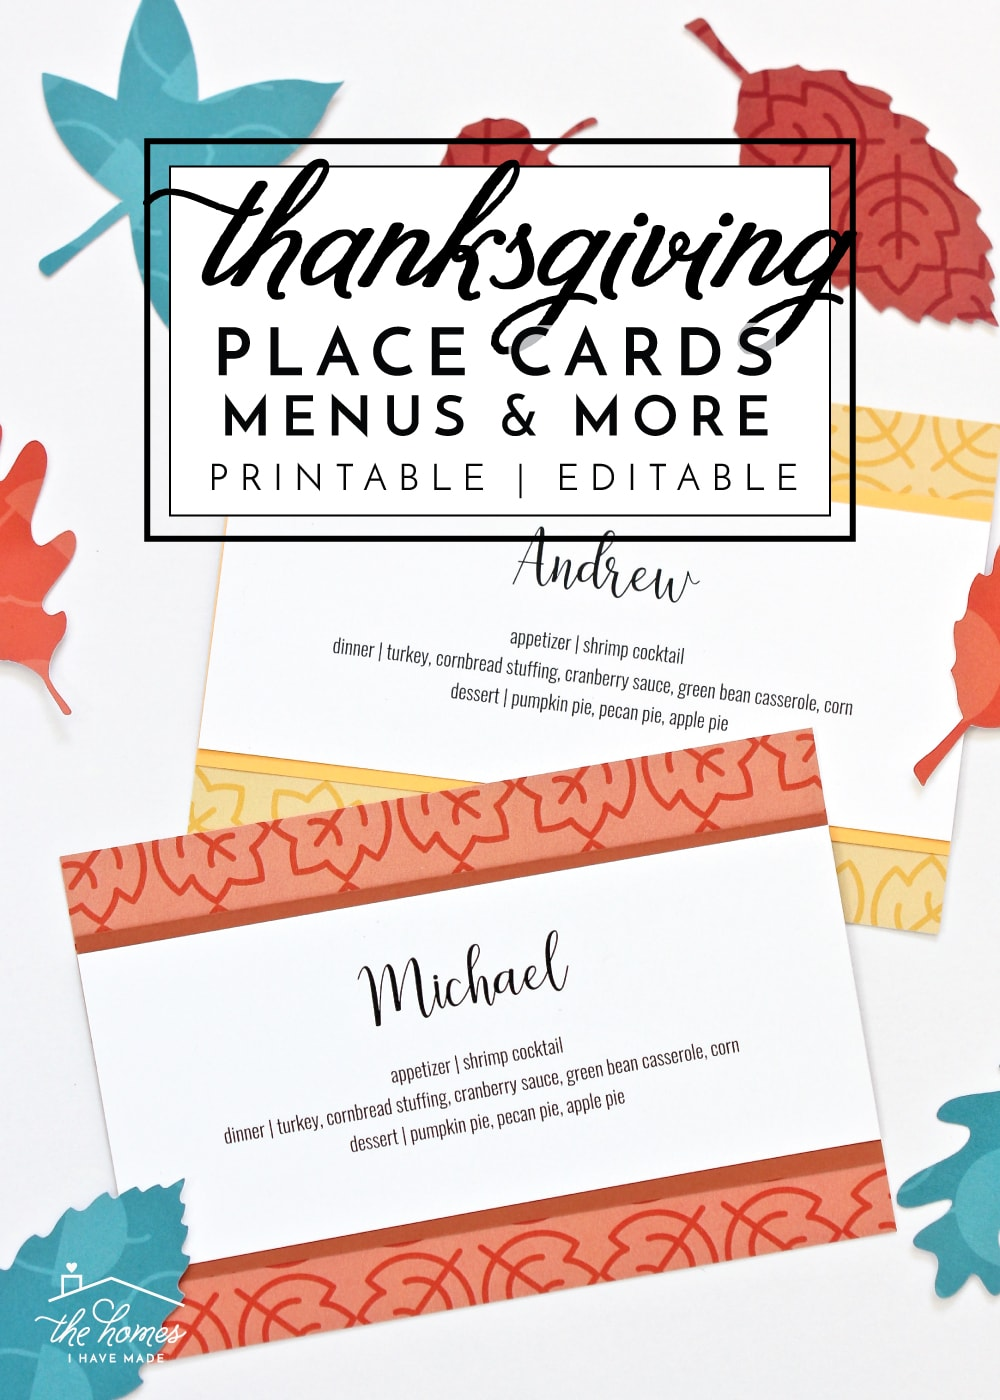 Get your Thanksgiving table ready in a snap with this printable kit full of printable Thanksgiving place cards, menu cards, thankful cards, patterns and more!